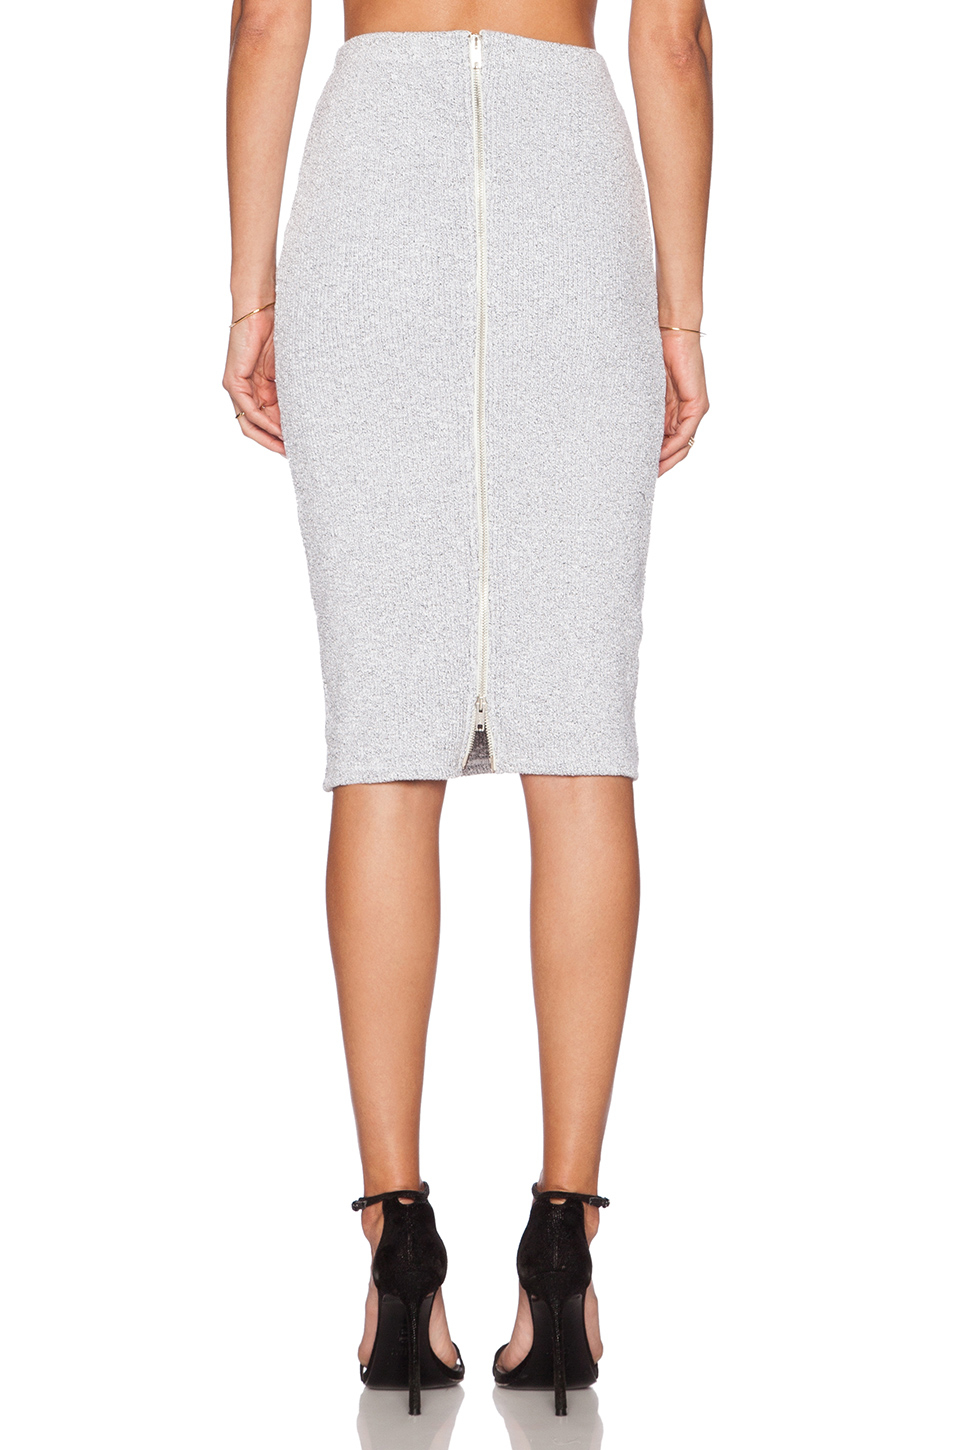 Lyst - Monrow Rib High Waist Pencil Skirt in White